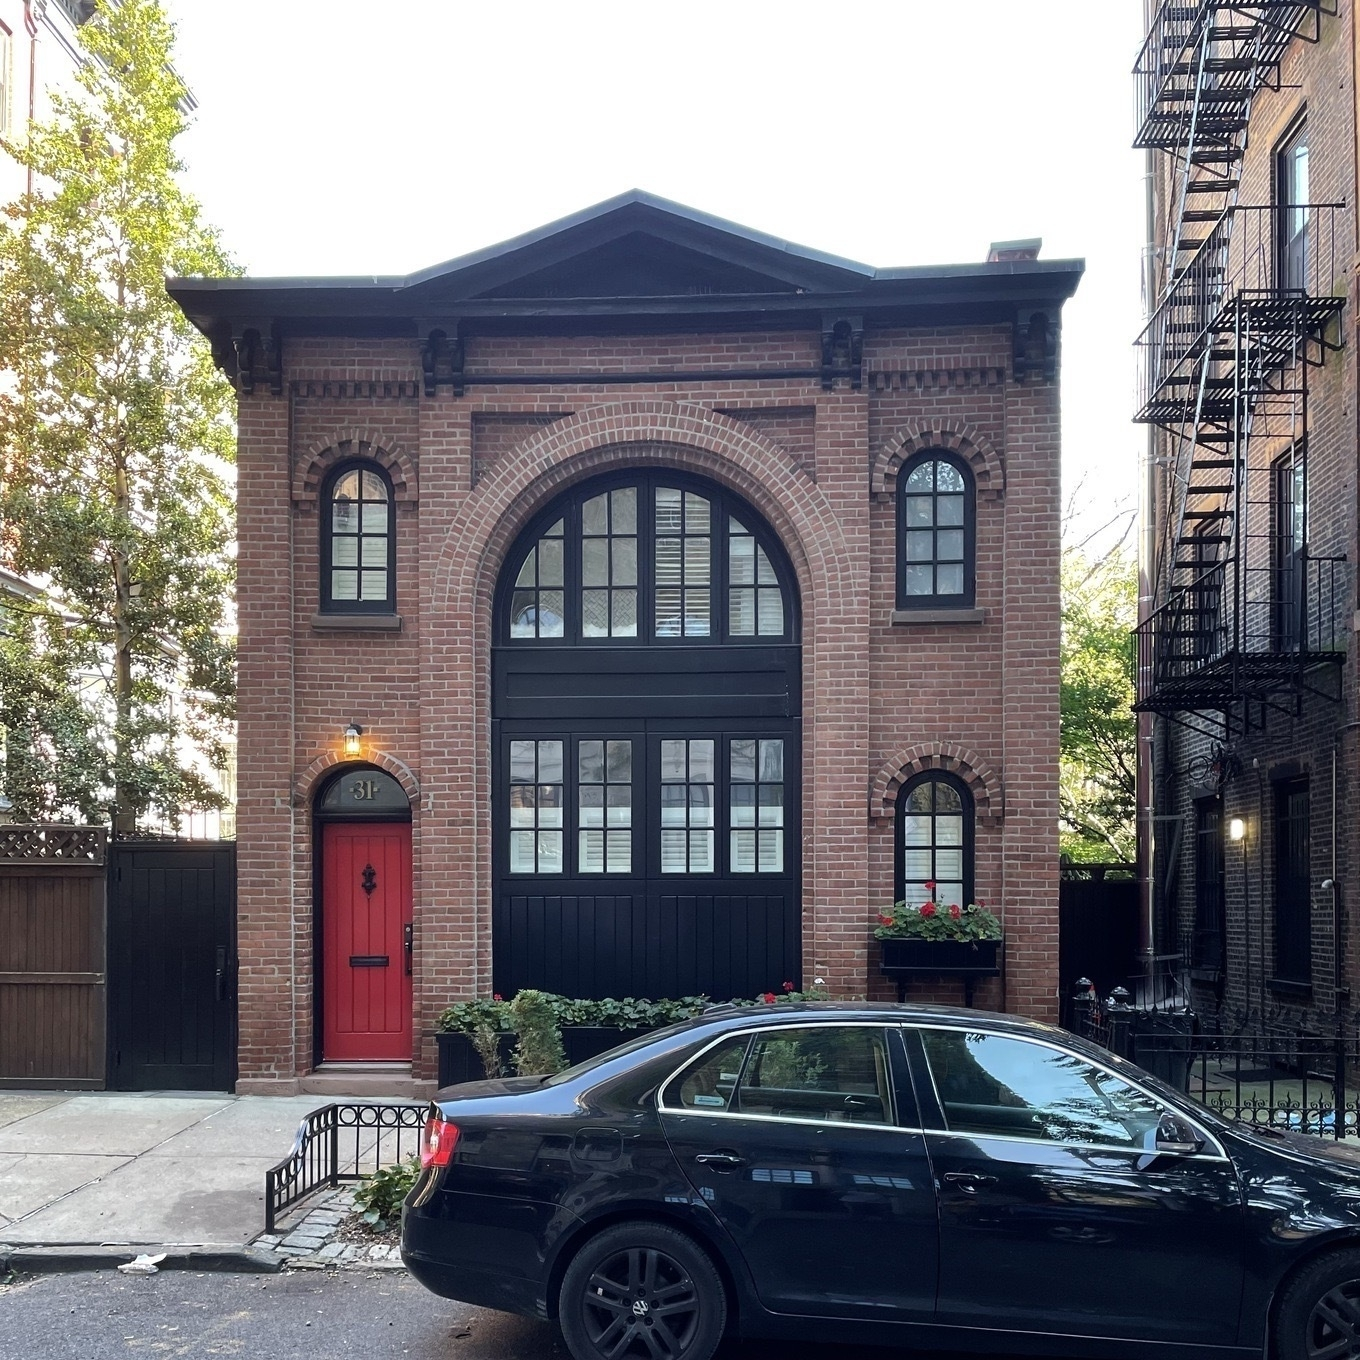 Brick house with a red door and two levels of black windows in an archway